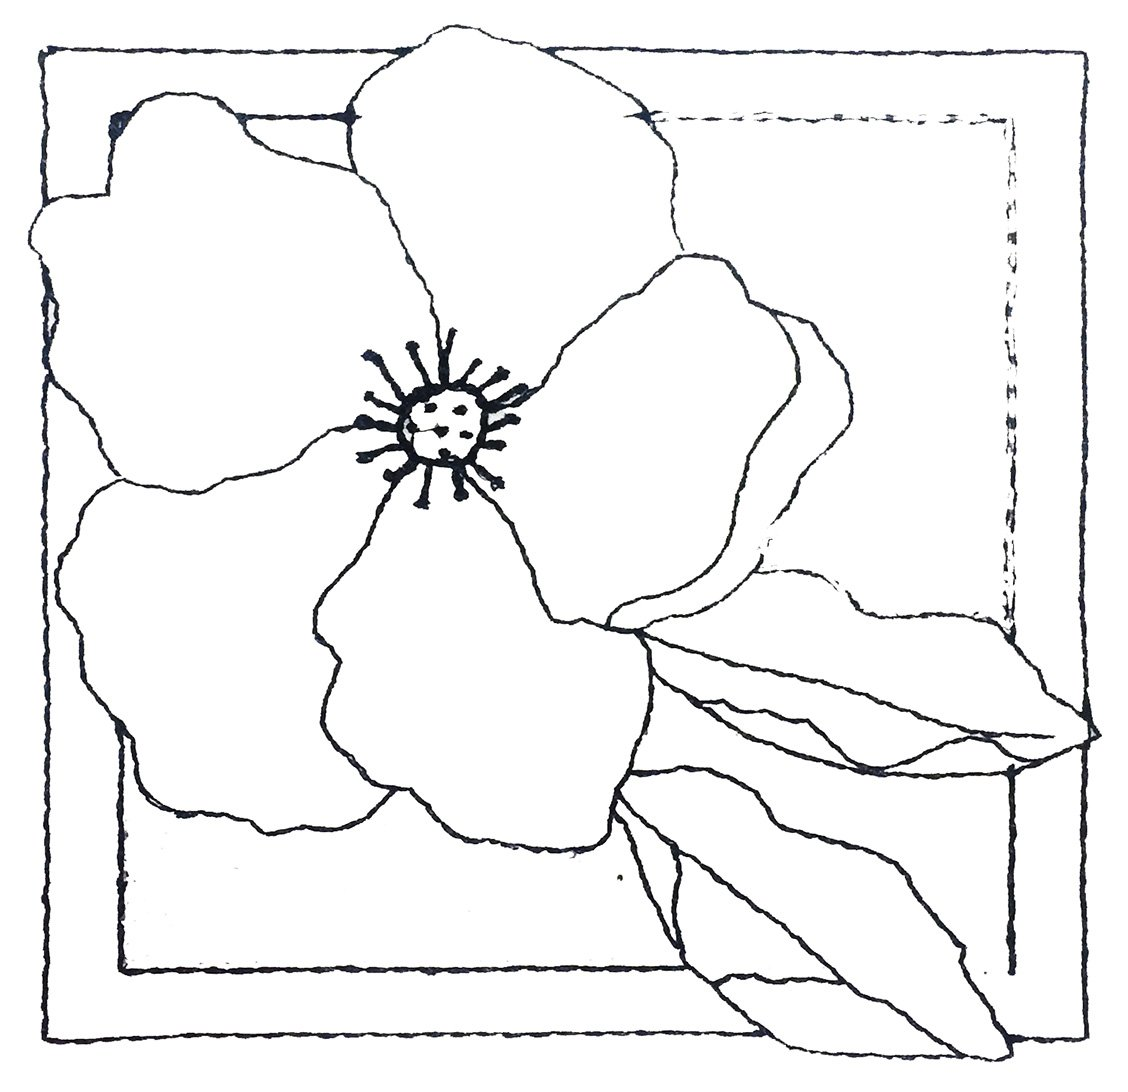 Pre-Stitched Art Applique blocks for coloring- Small single Rose (QA-15R)